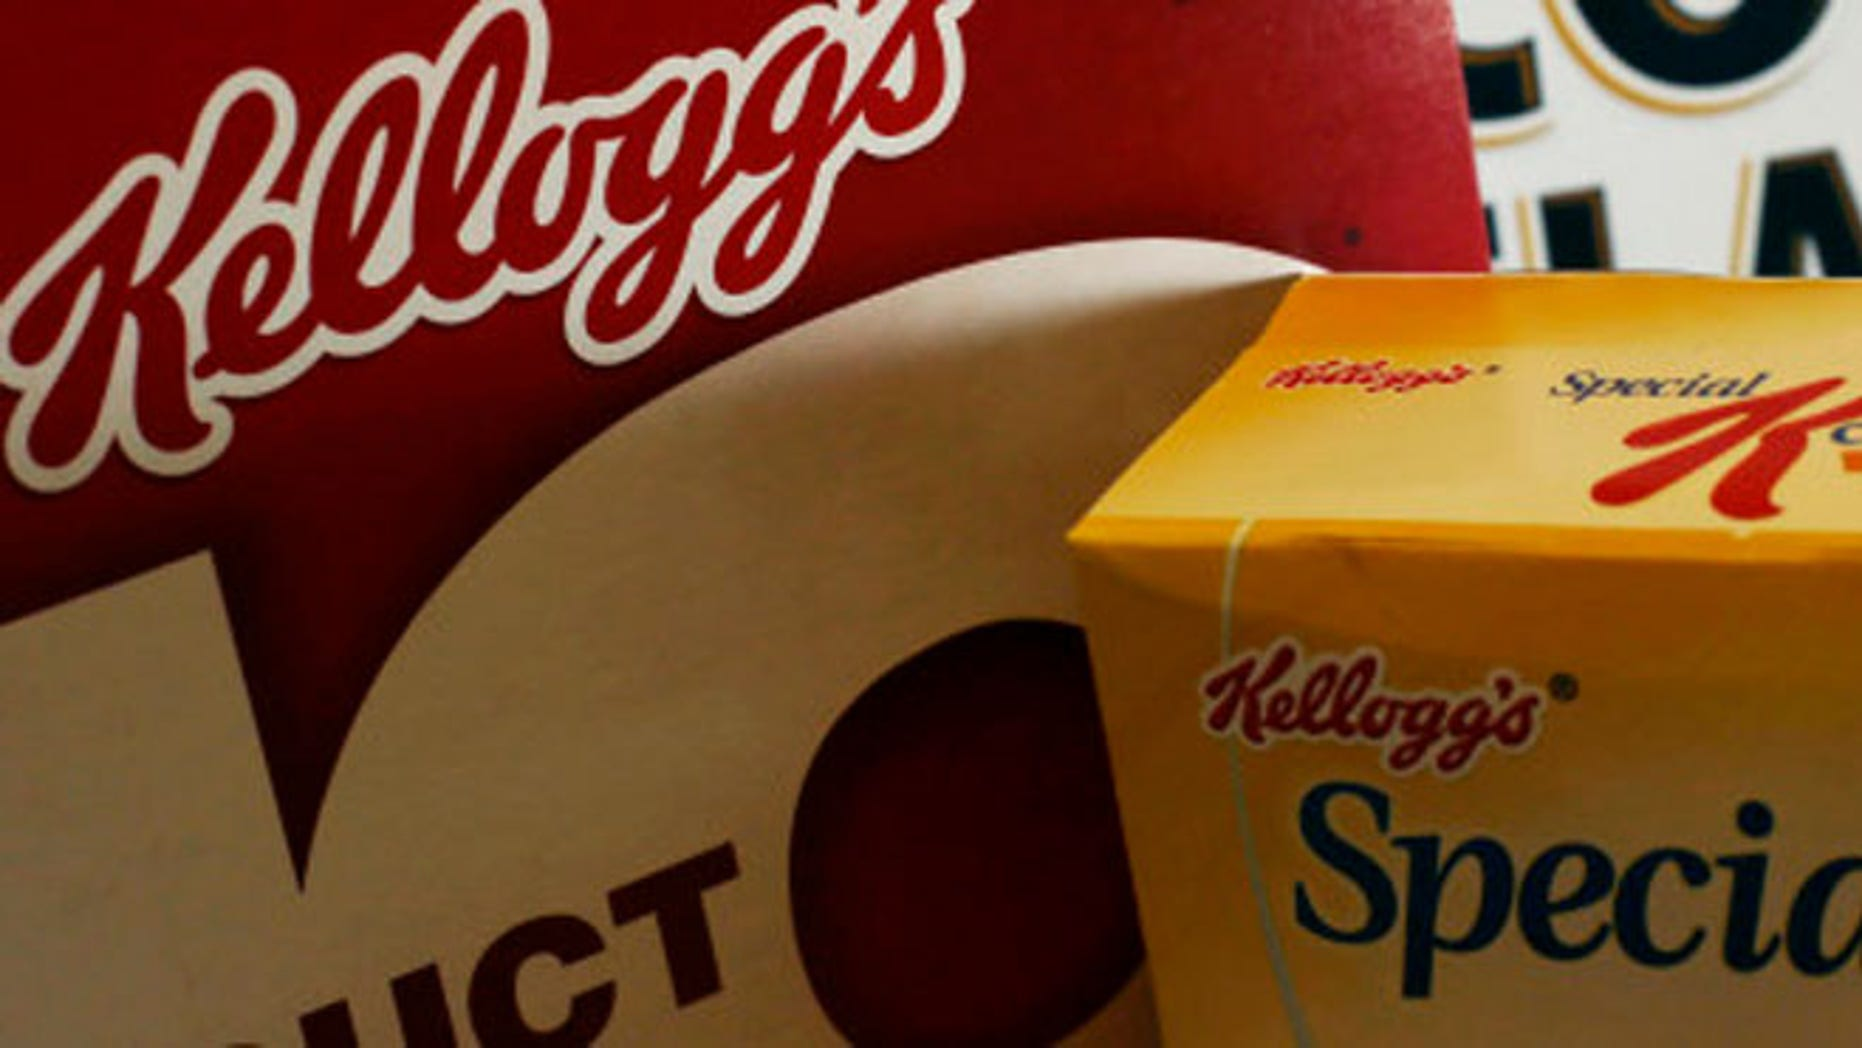 Kellogg was sued for saying that the cereal improved children's attentiveness, memory and other cognitive functions.